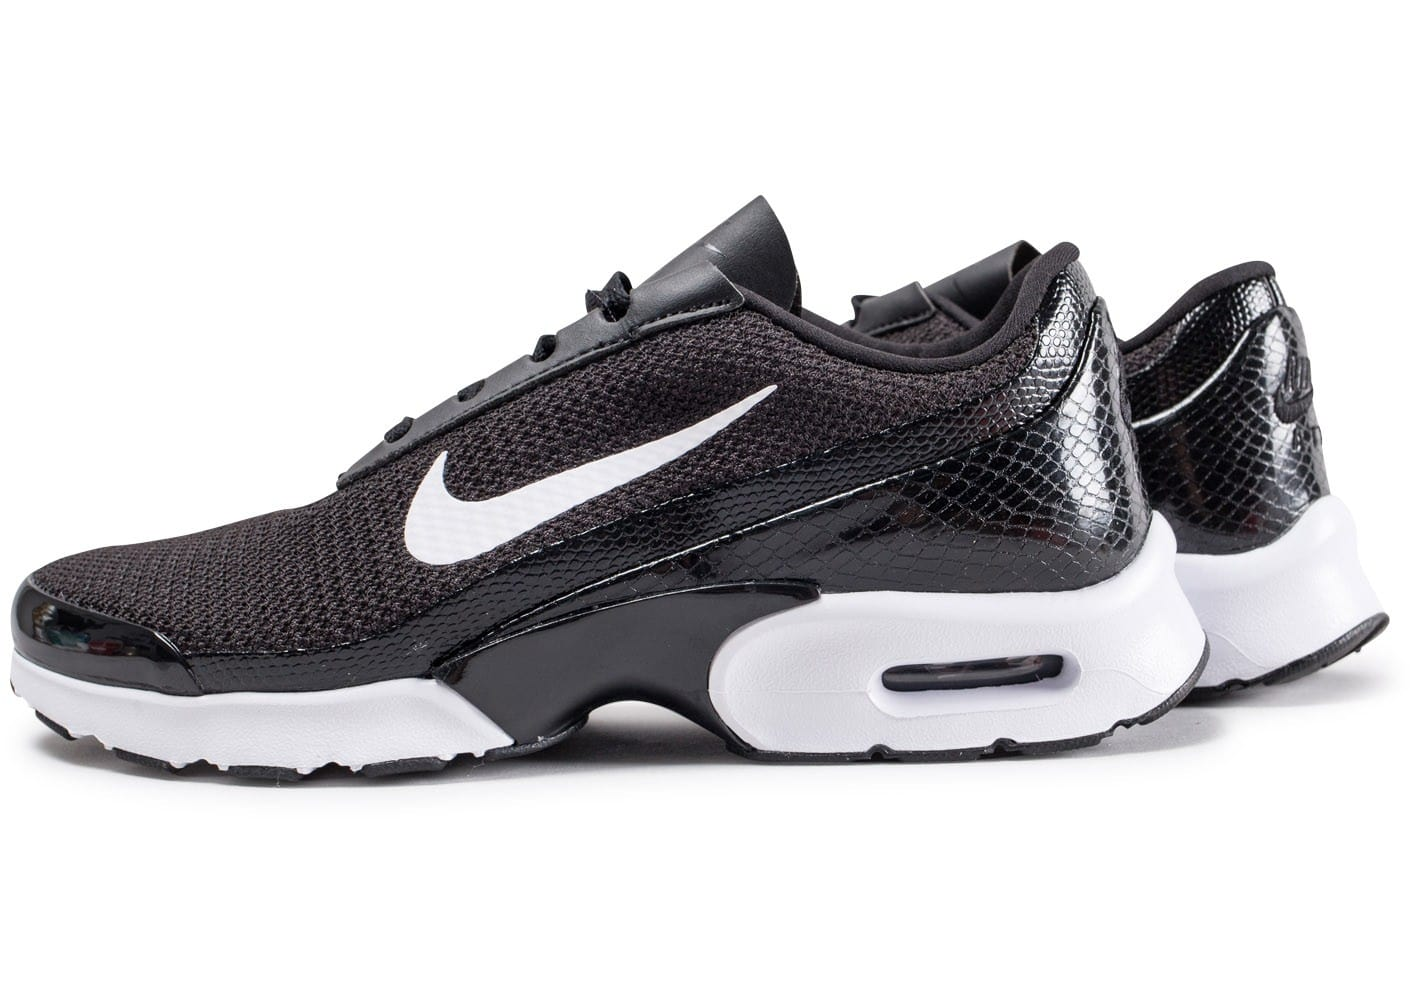 nike air max jewell noire et blanche chaussures femme chausport. Black Bedroom Furniture Sets. Home Design Ideas